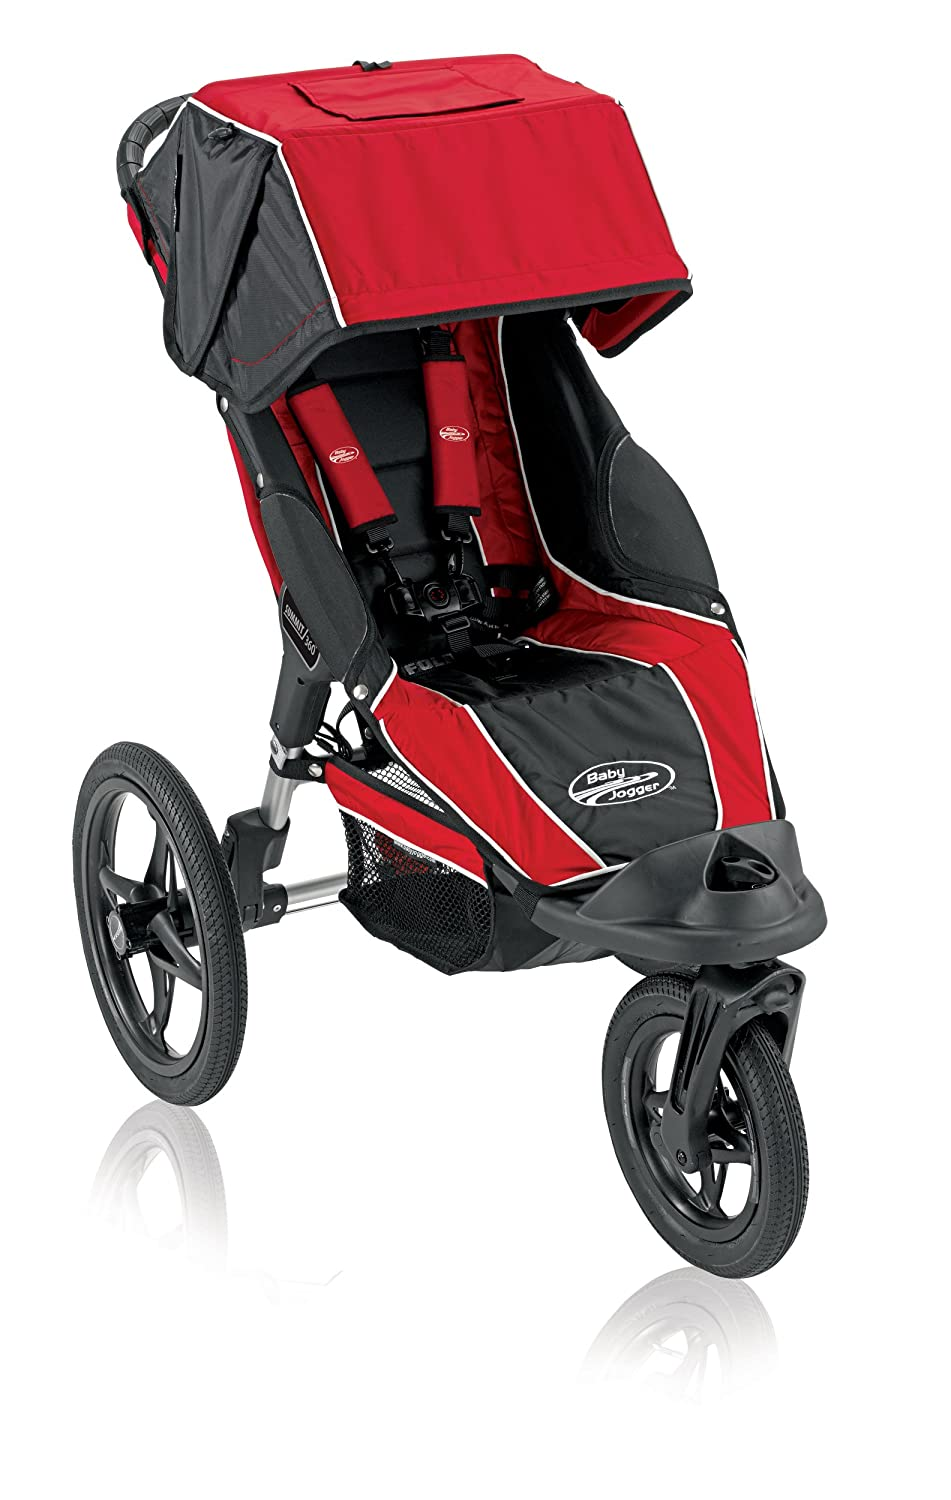 Baby Jogger Summit 360 Single Jogging Stroller Red Black Discontinued By Manufacturer